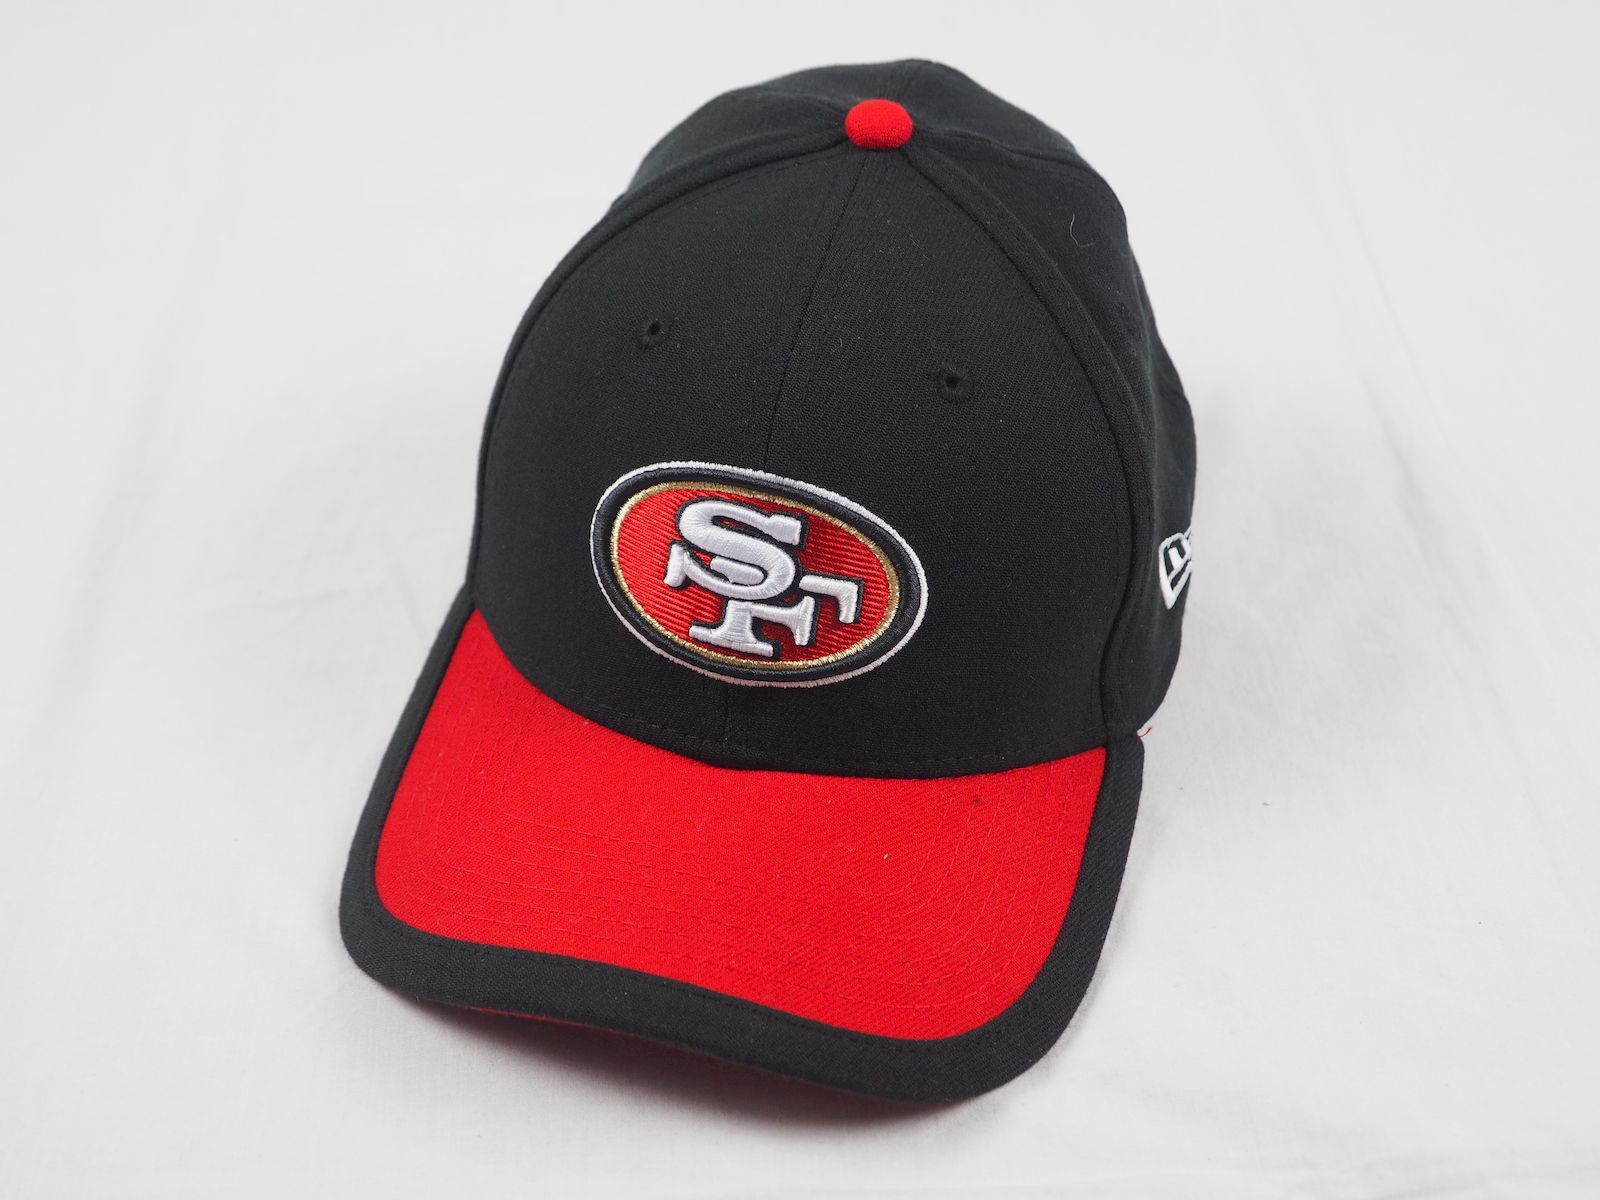 f65654aa29b35 Details about New Era San Francisco 49ers - Black Red Fitted Hat (Multiple  Sizes) - Used